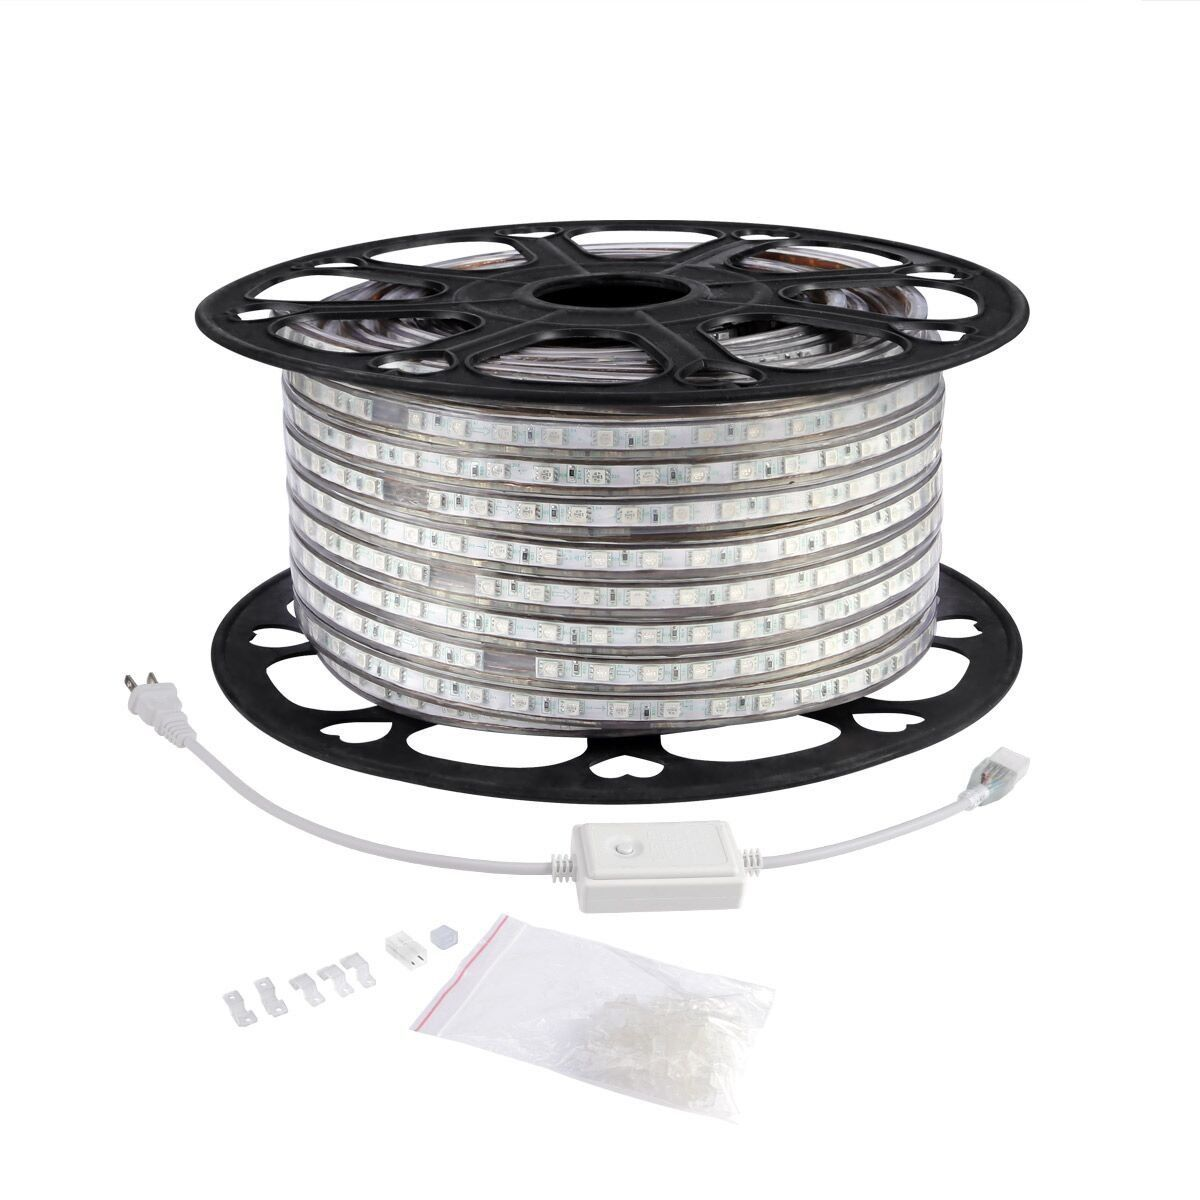 Le 164ft flexible led strip lights blue 3000 units smd 5050 leds le 164ft flexible led strip lights blue 3000 units smd 5050 leds 720lmm 110 120 v ac waterproof ip65 accessories included led rope lights led tape aloadofball Images